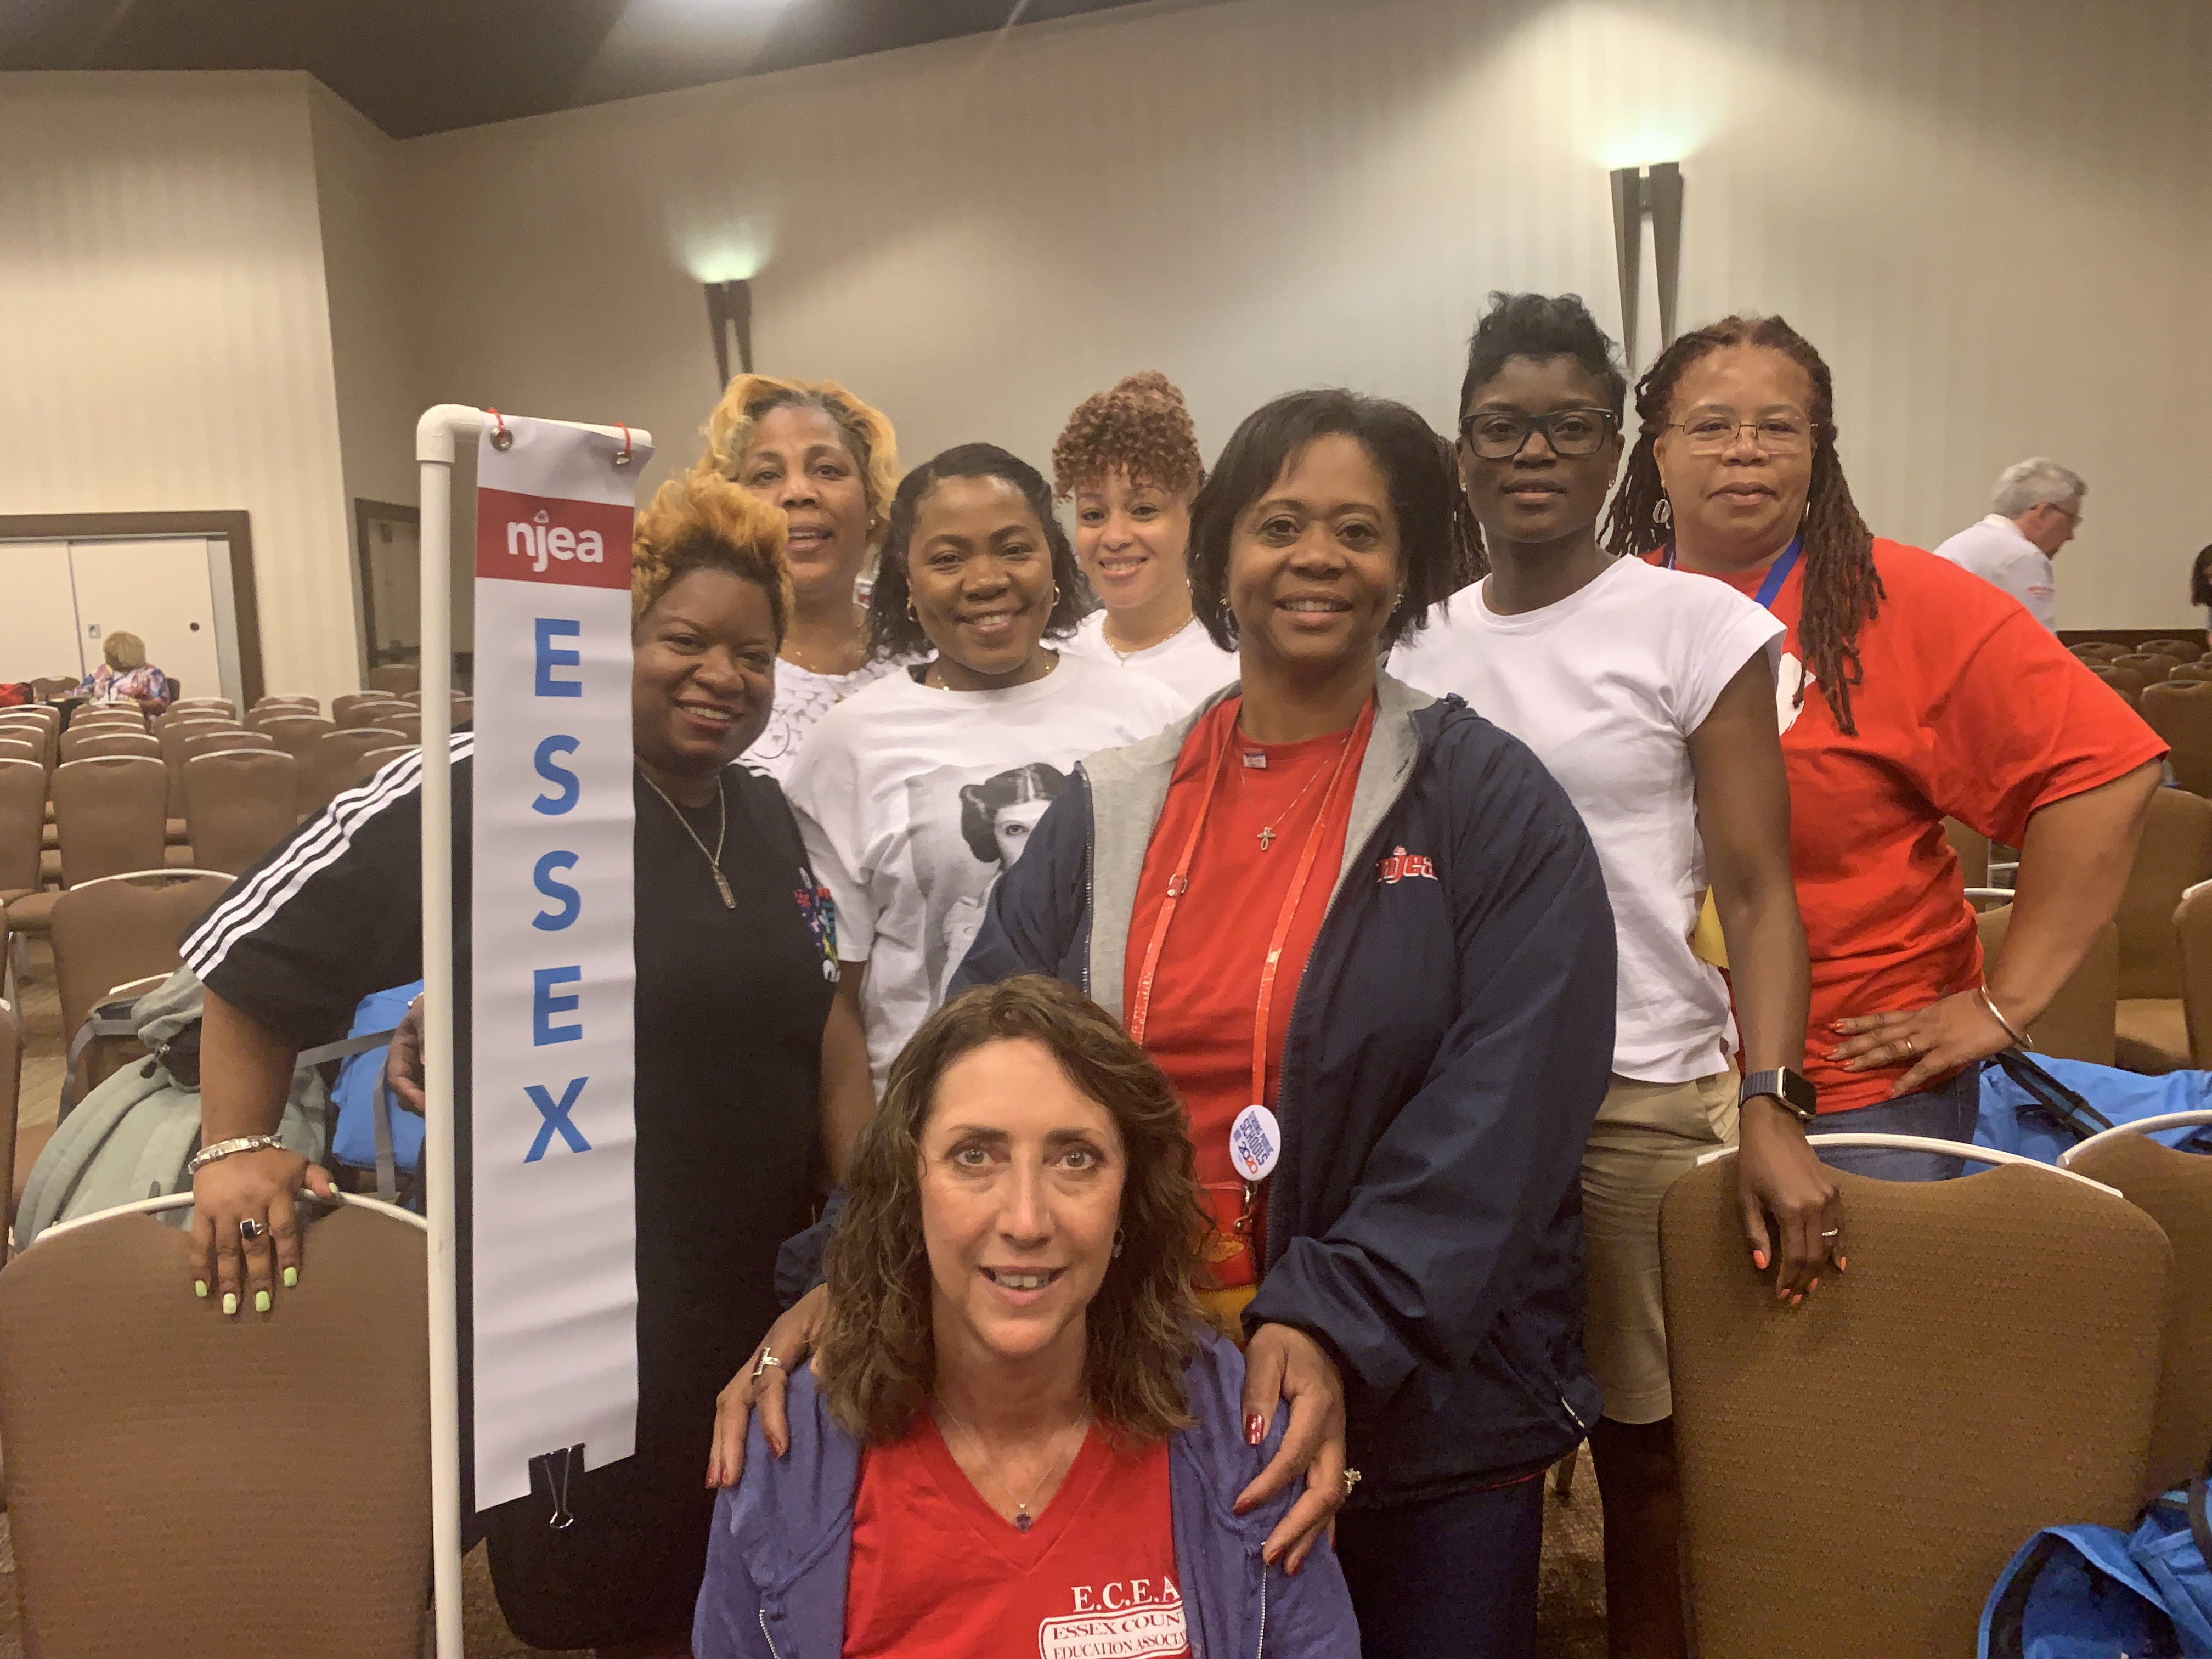 Some-of-our-members-were-excited-to-get-started-on-the-first-day-of-the-2019-NEA-RA-in-Houston-TX